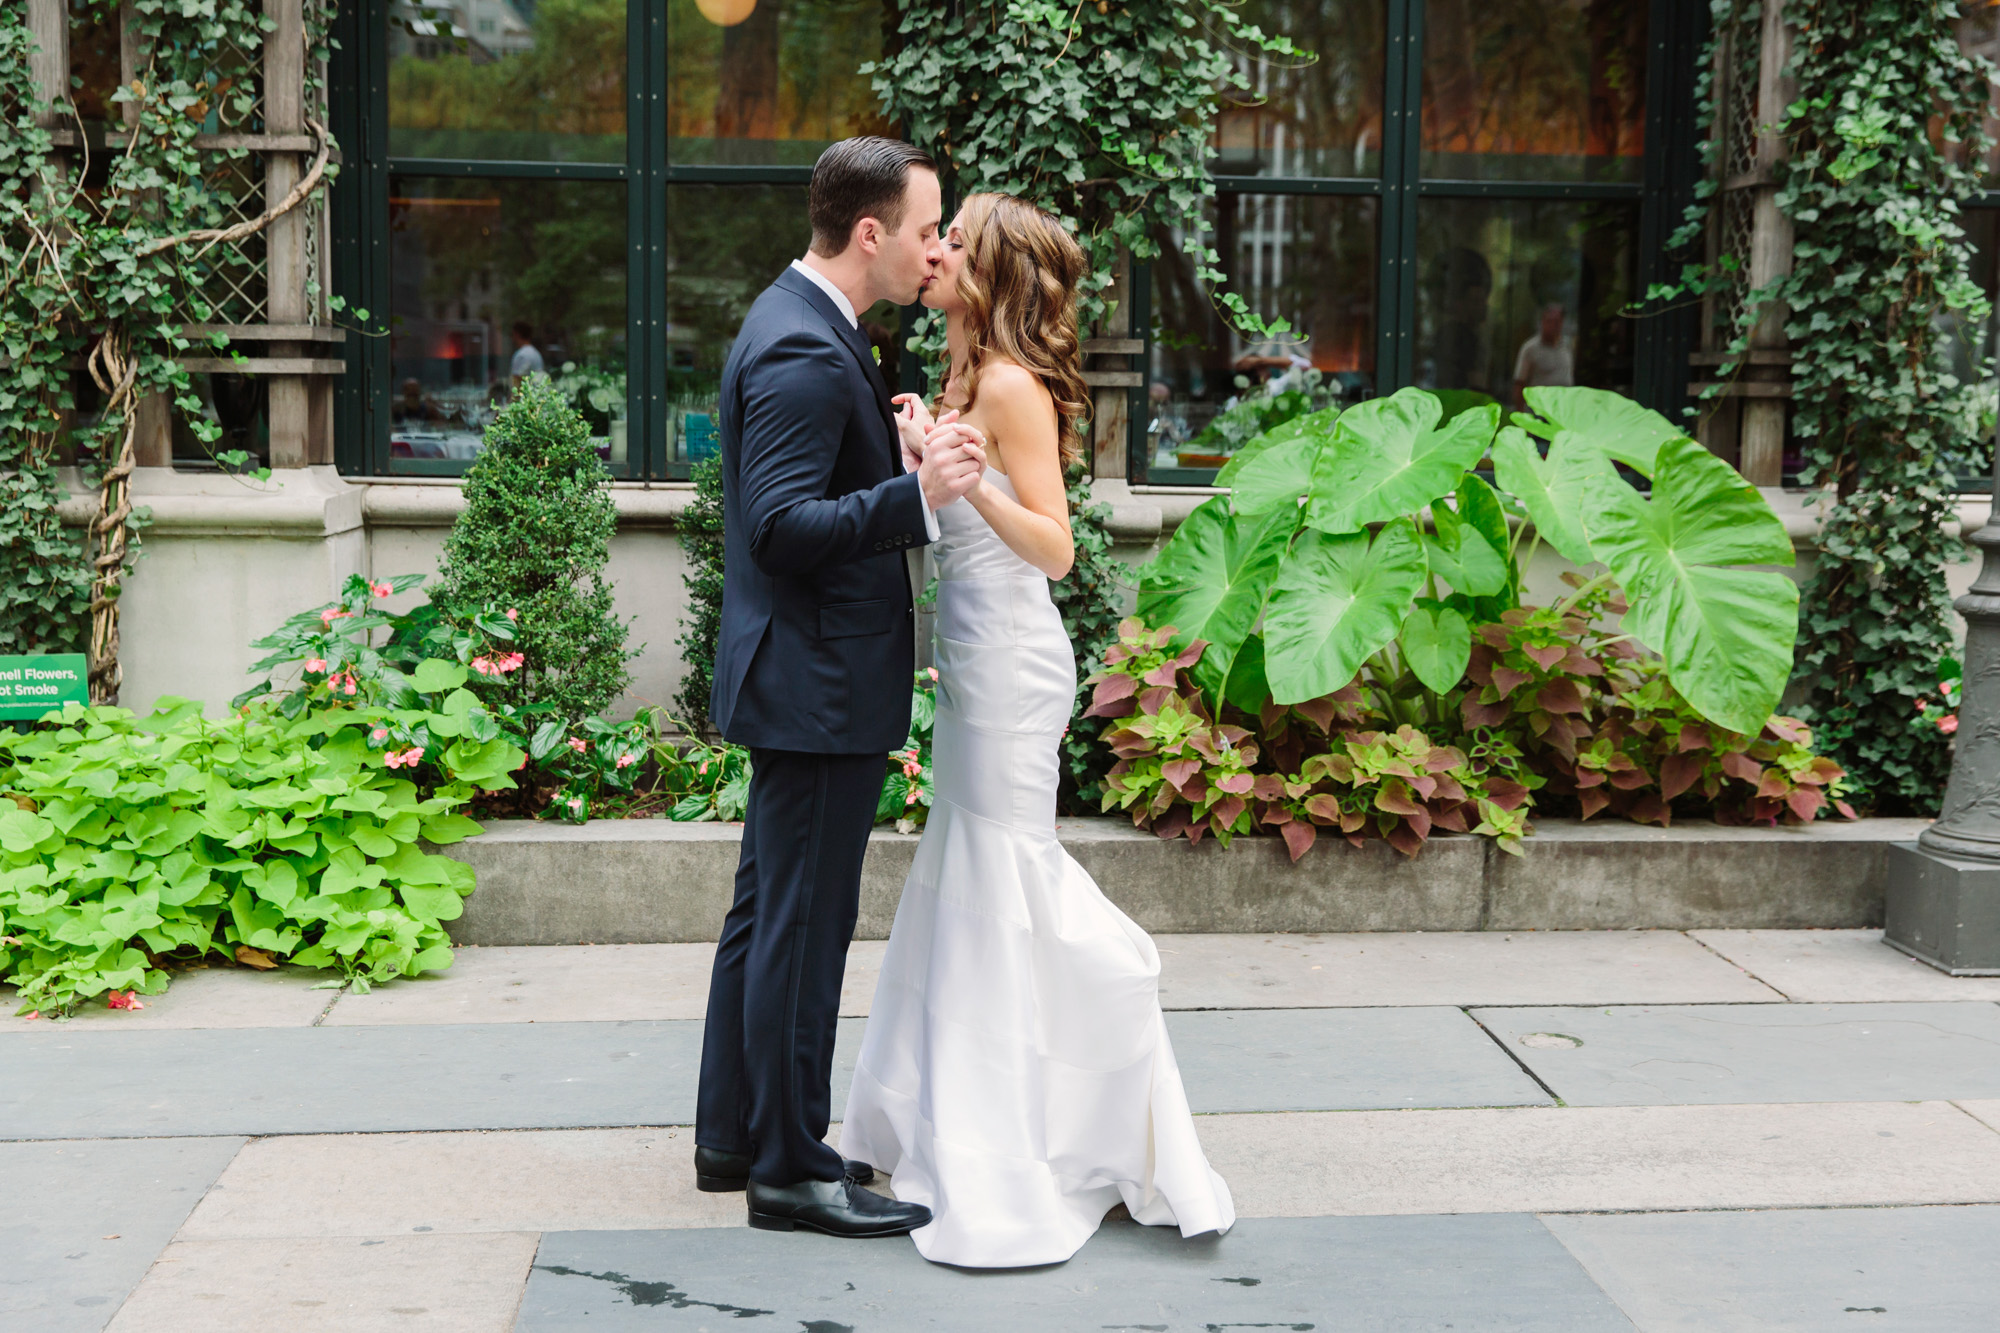 24_Ali_Lloyd_Bryant_Park_Grill_Wedding_NYC_Tanya_Salazar_Photography_146.jpg